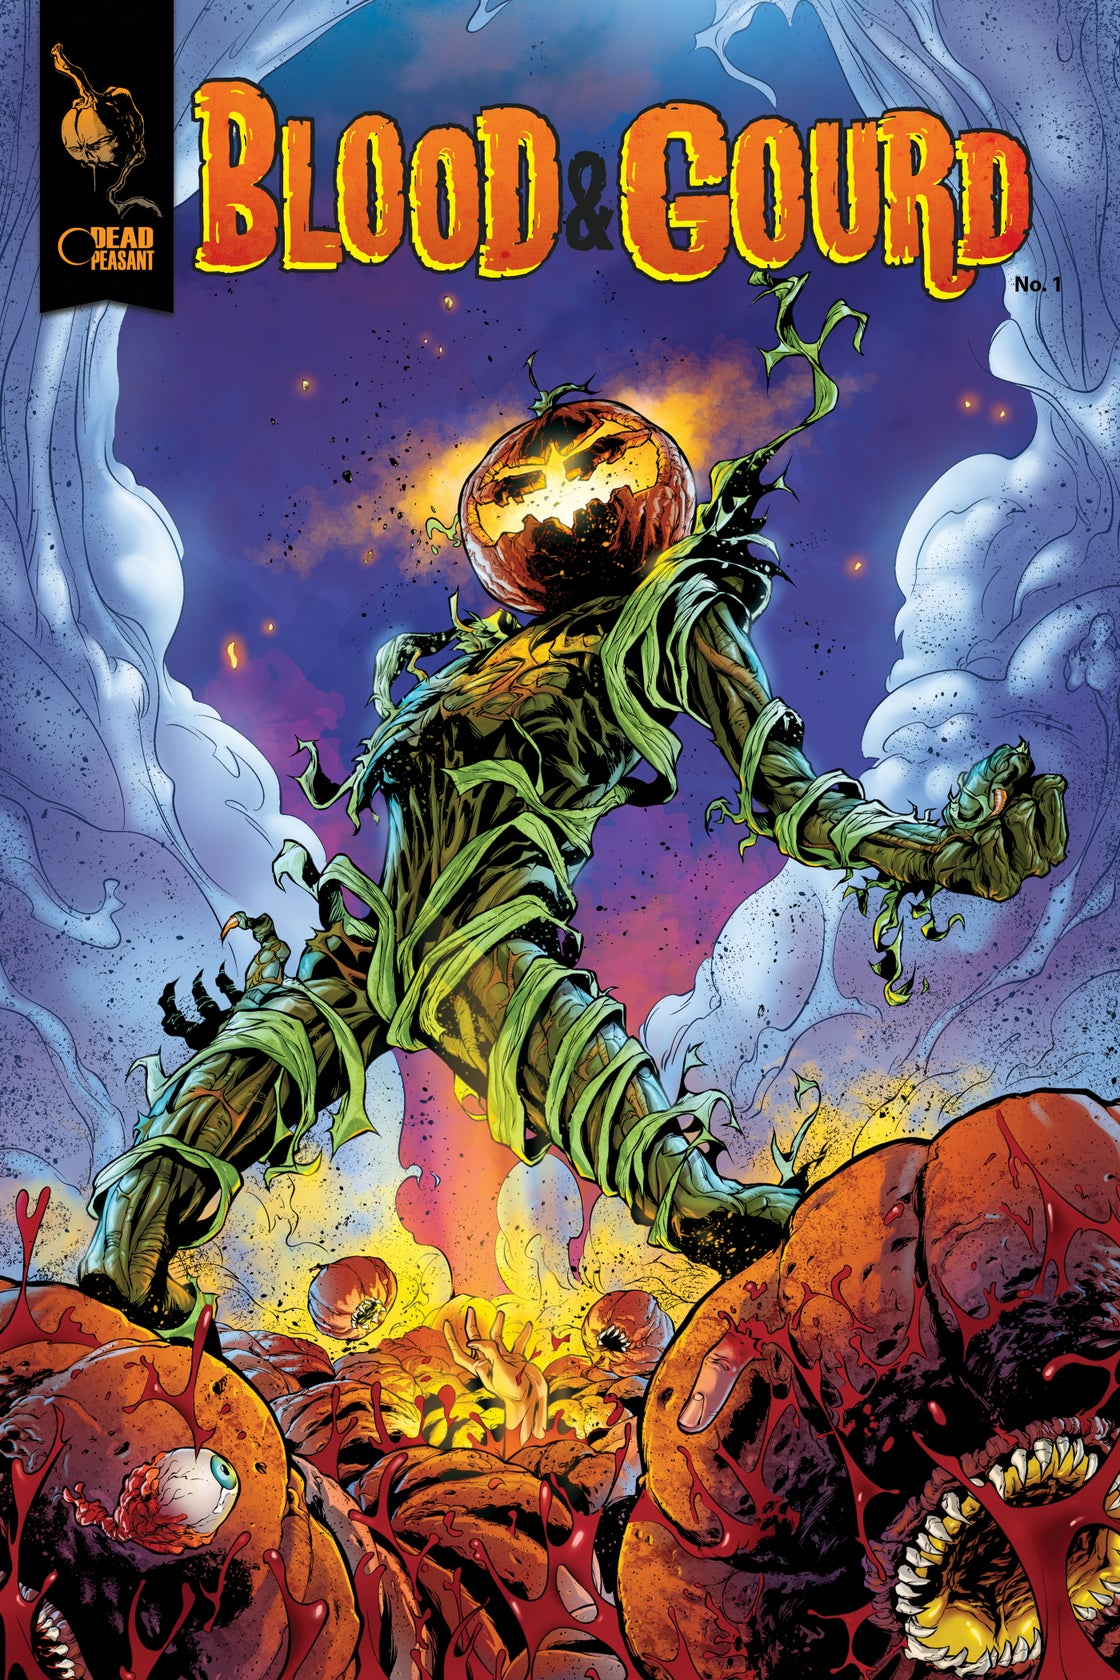 Image of Blood & Gourd Issue #1